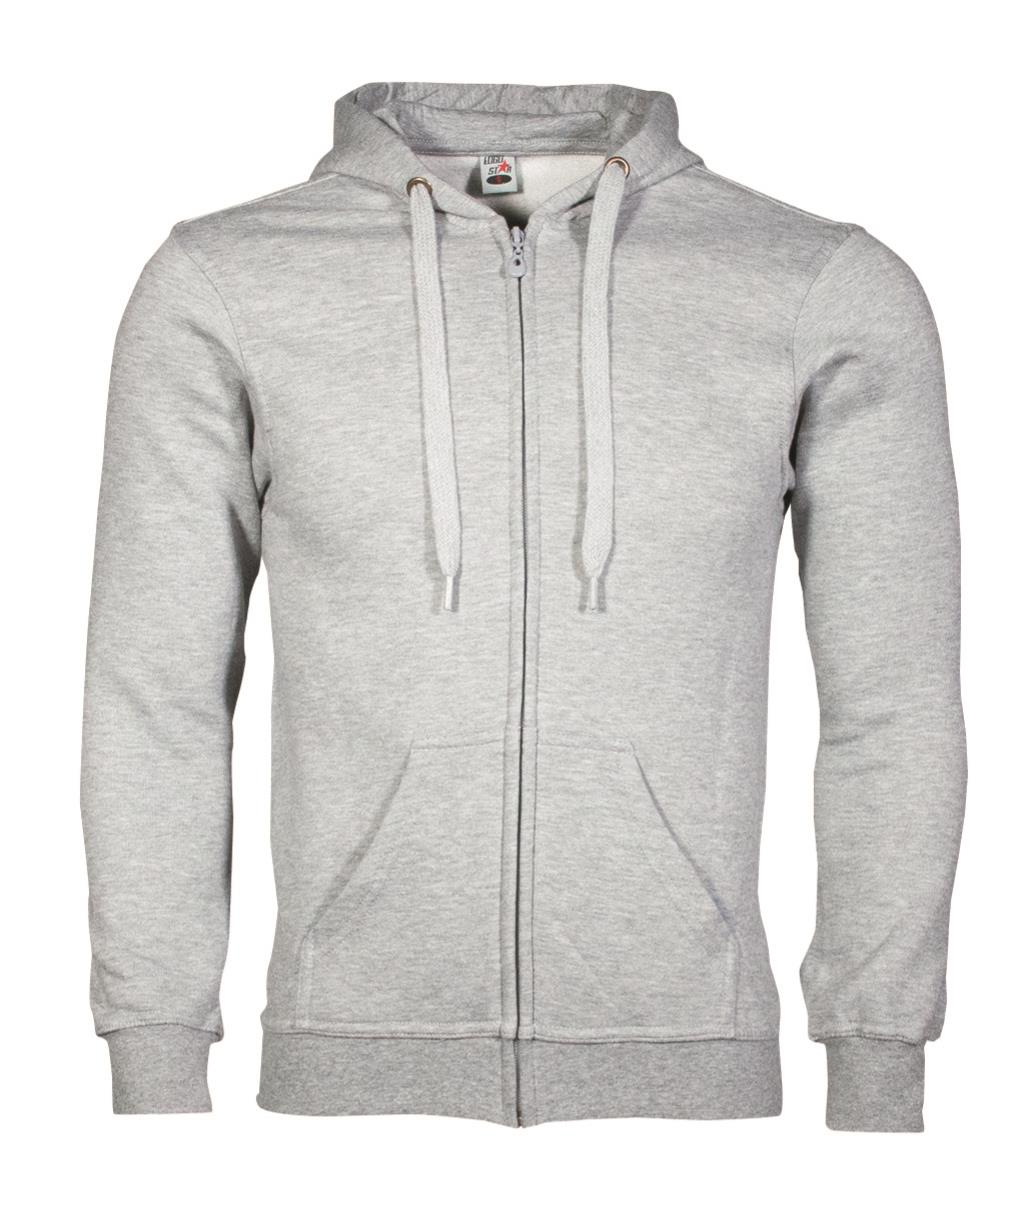 UNI Best Deal Hooded Zip